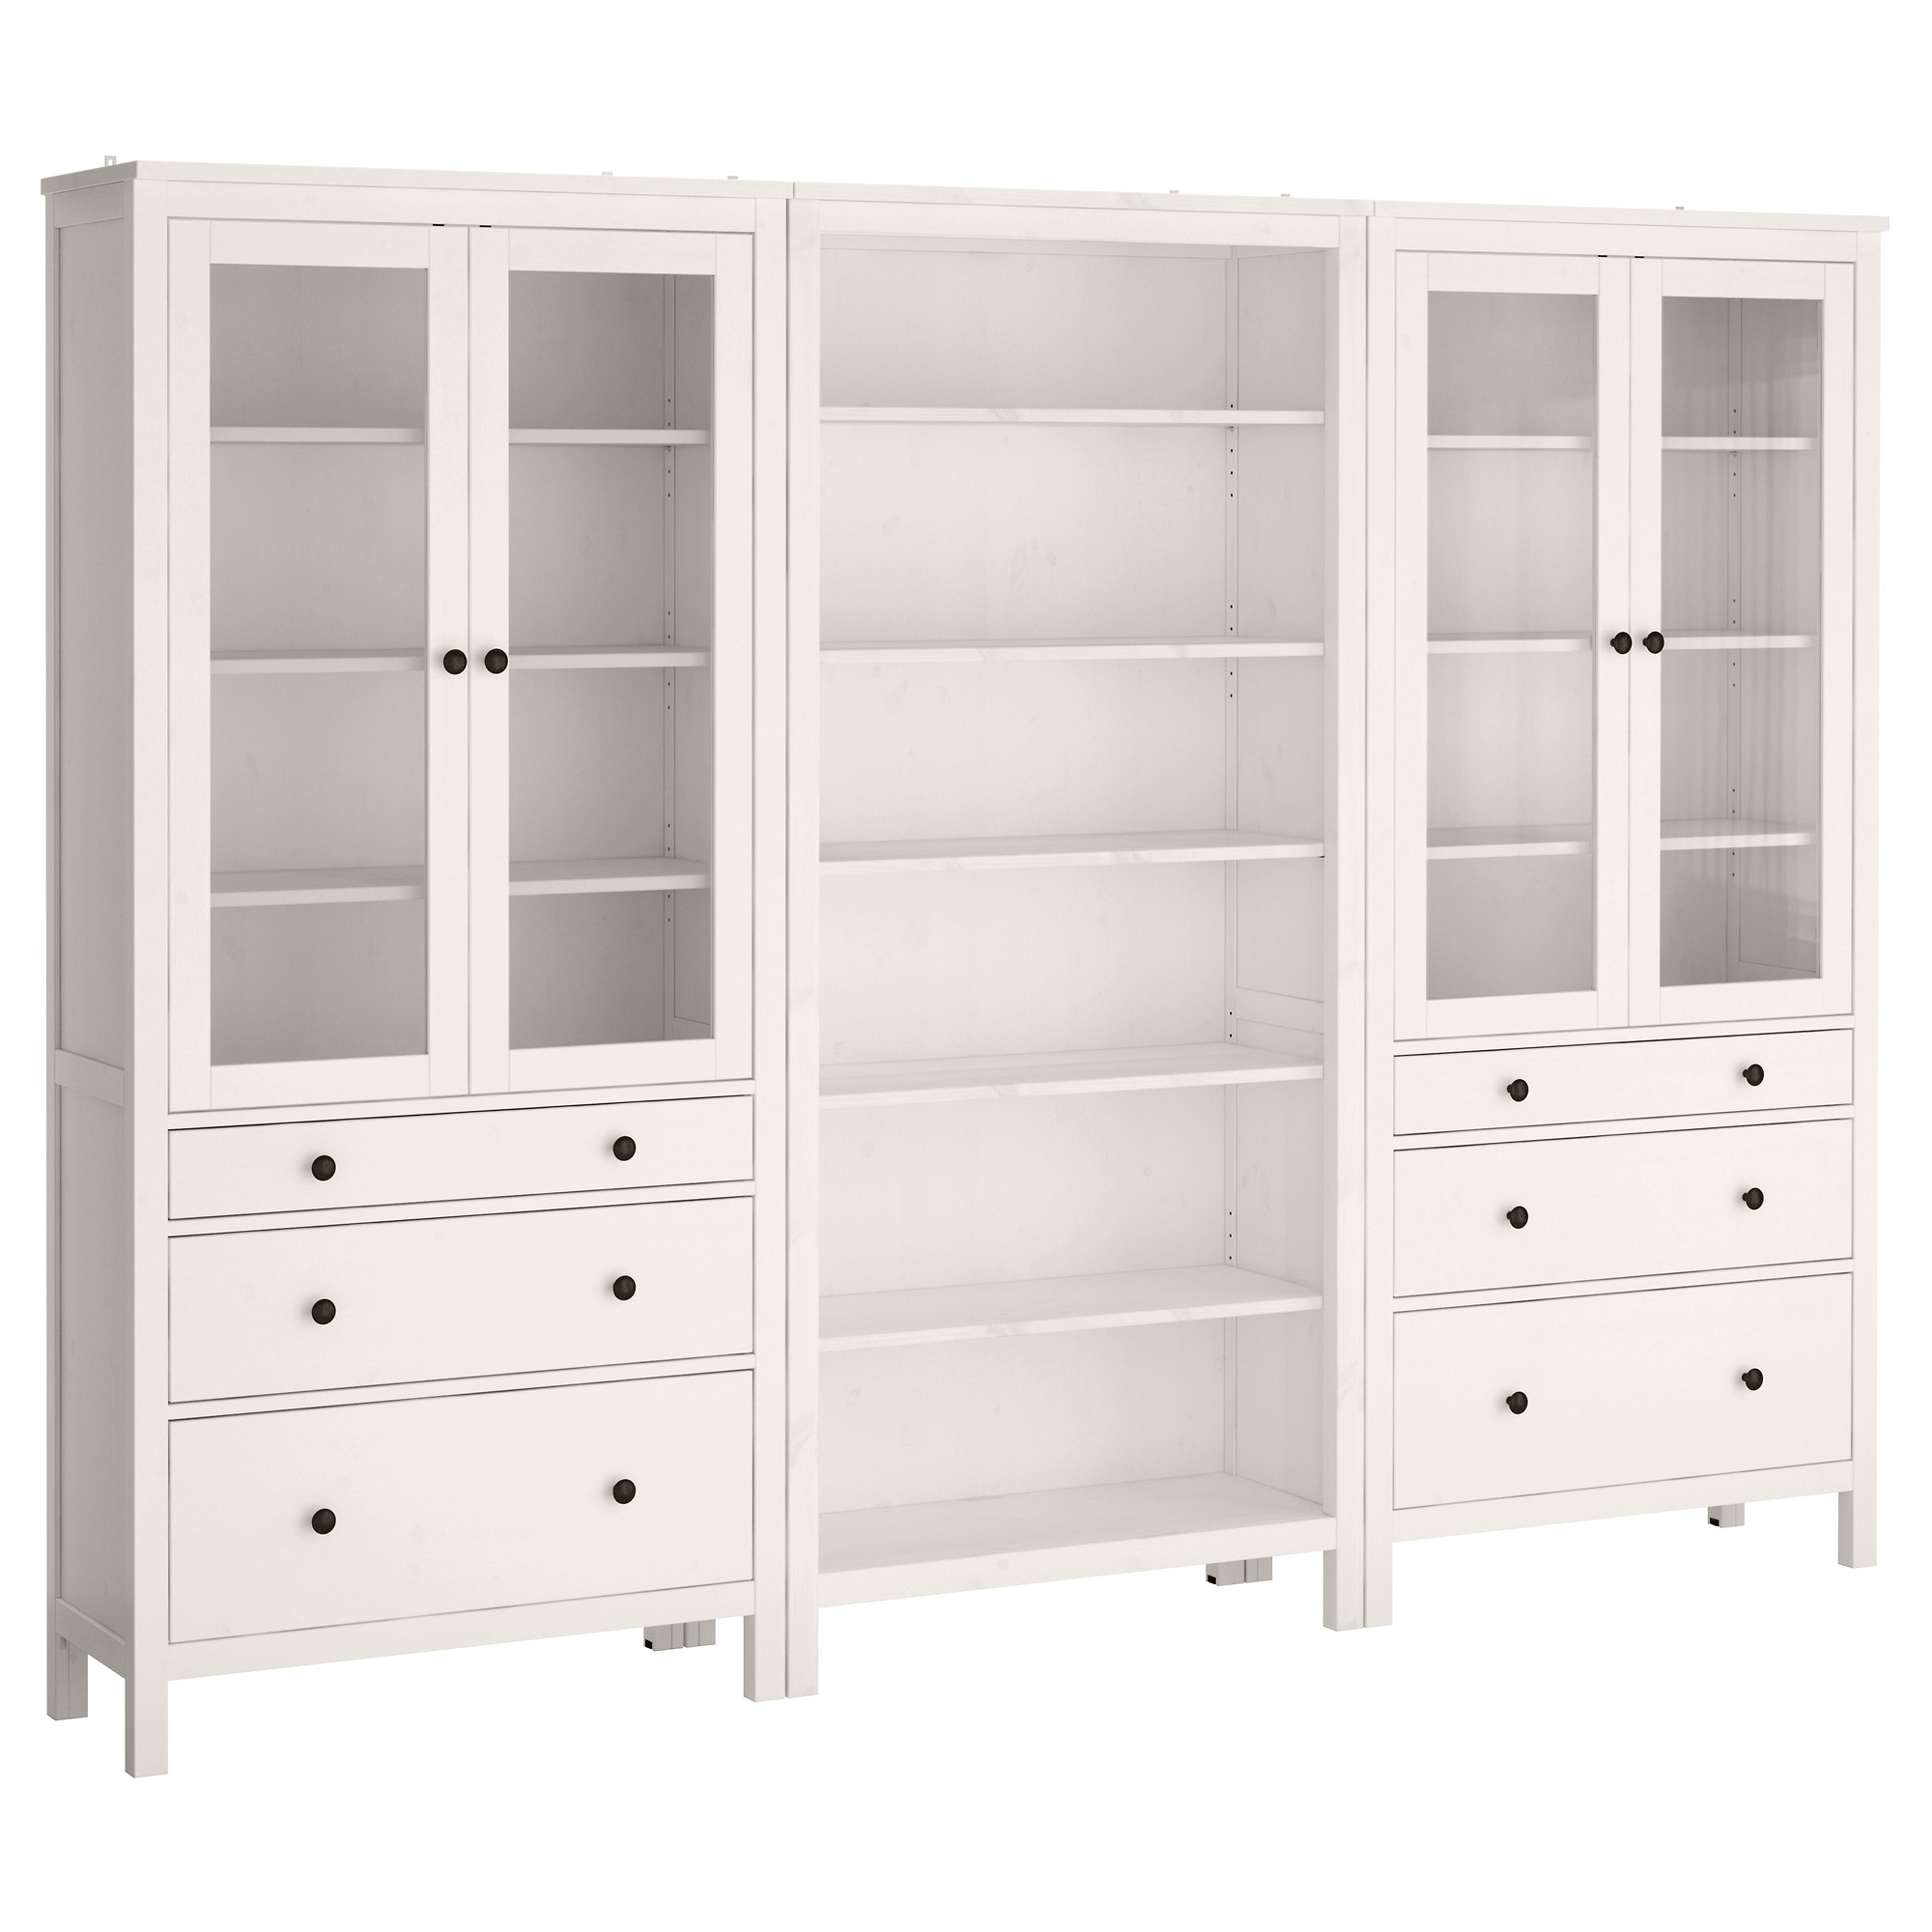 Bookcases With Drawers On Bottom Regarding Current Hemnes Storage Combination W Doors/drawers – White Stain – Ikea (View 5 of 15)